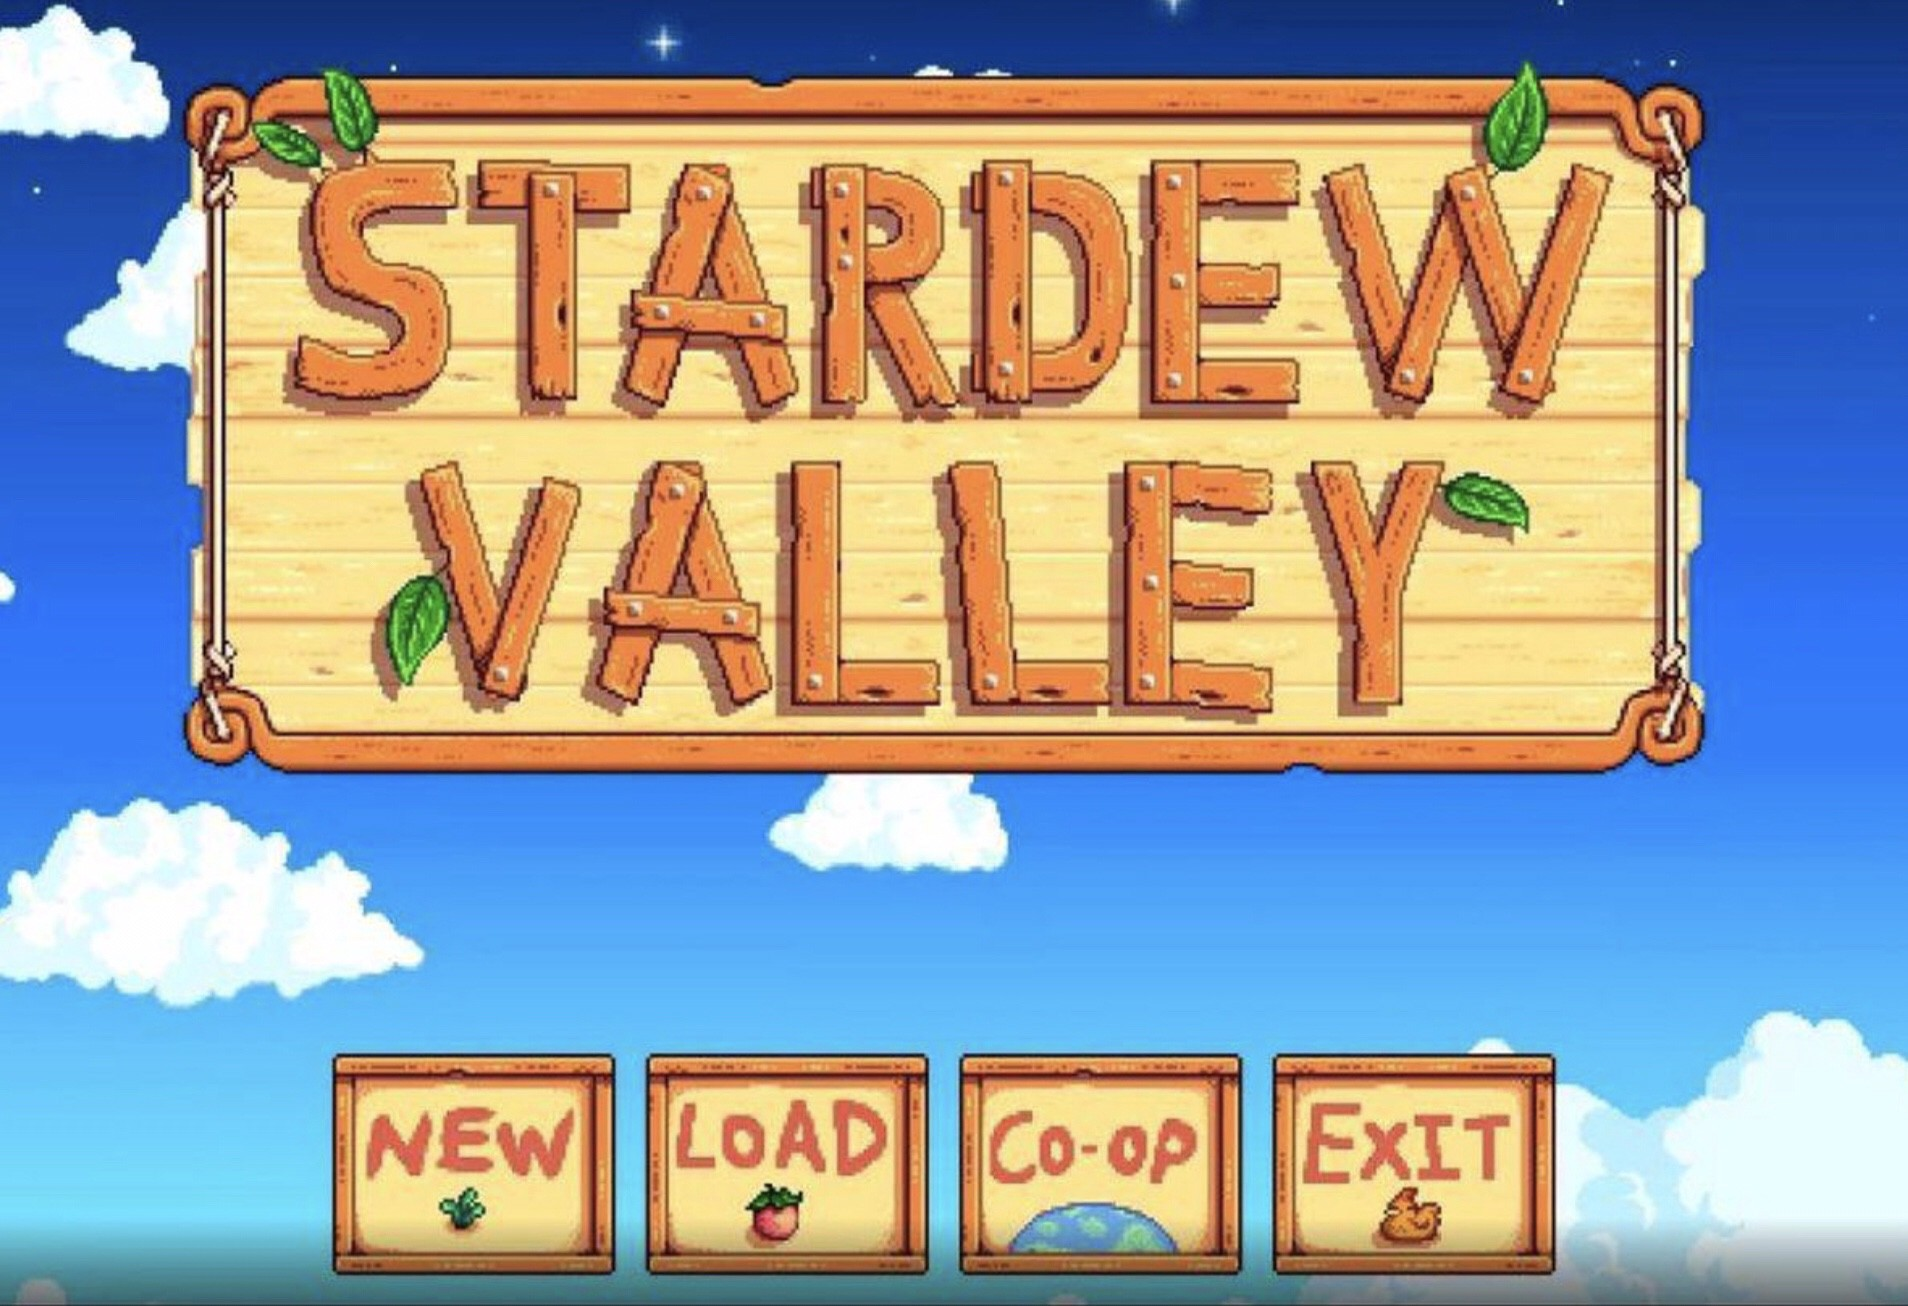 What Stardew Valley has taught me about passive income